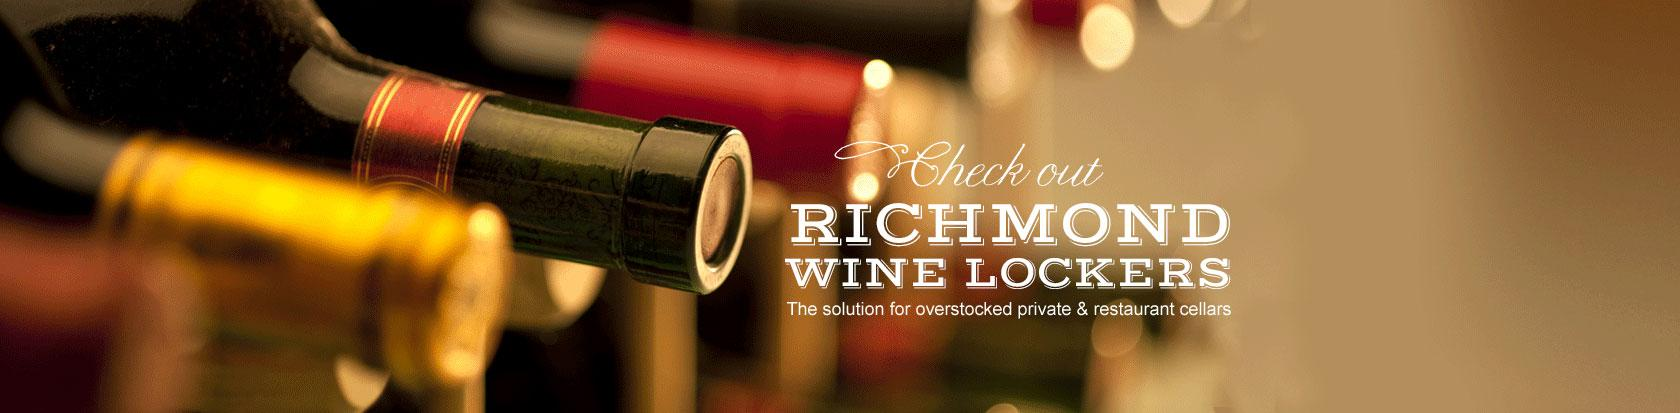 richmond wine lockers